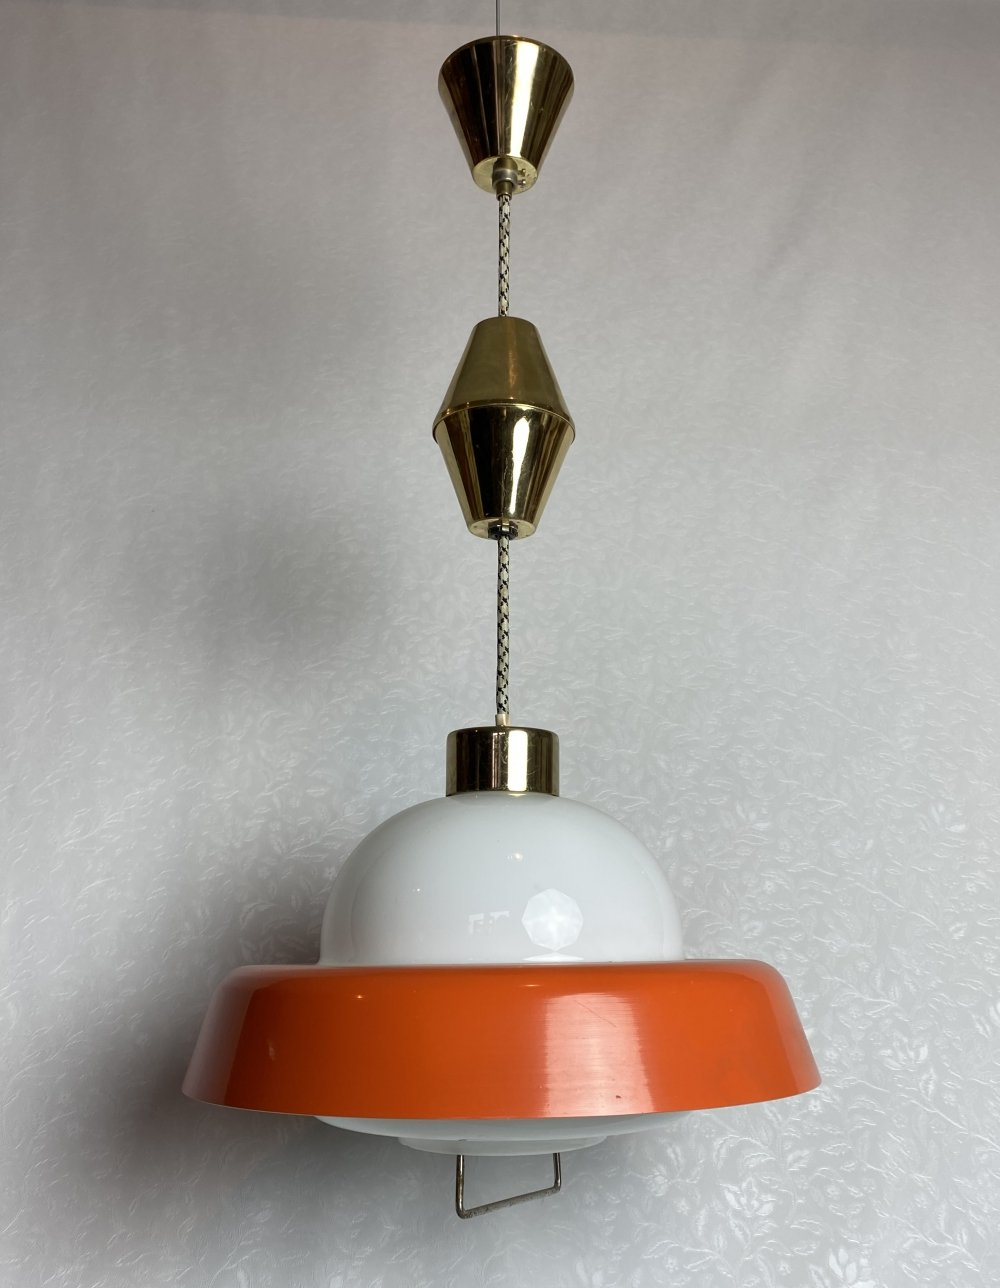 Vintage UFO kitchen lamp, 1970s